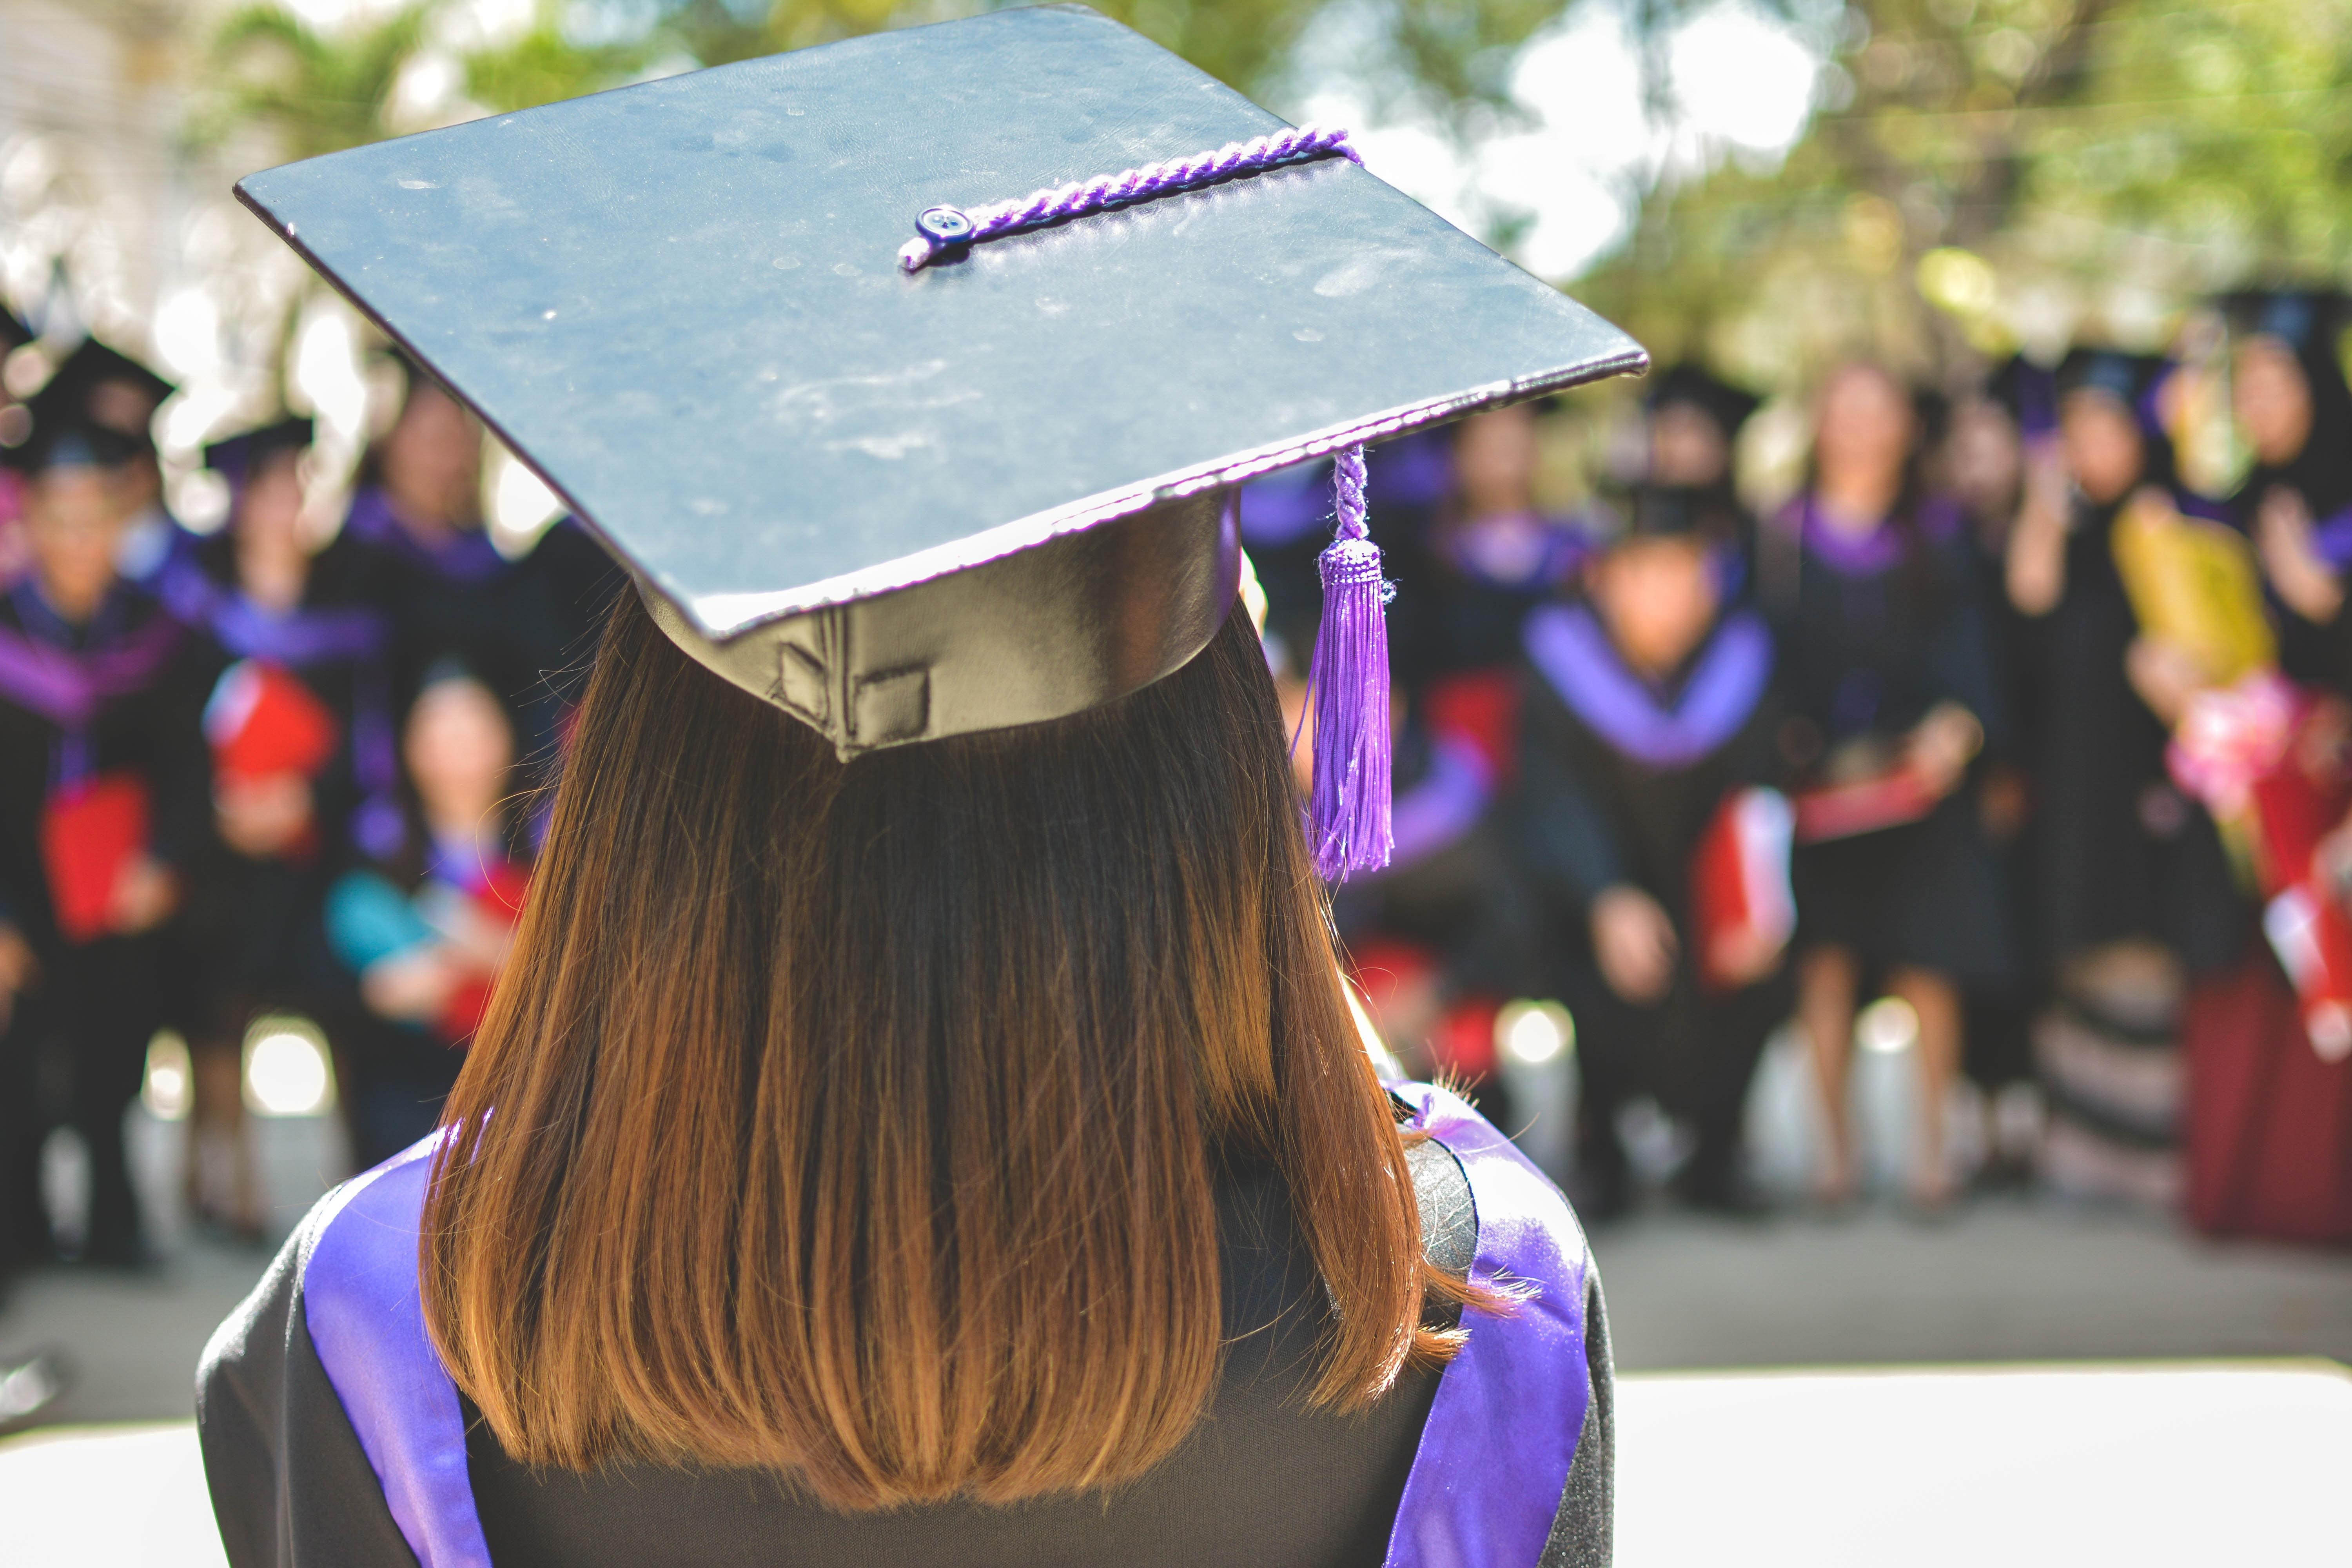 a student is shown wearing a graduation gown and cap